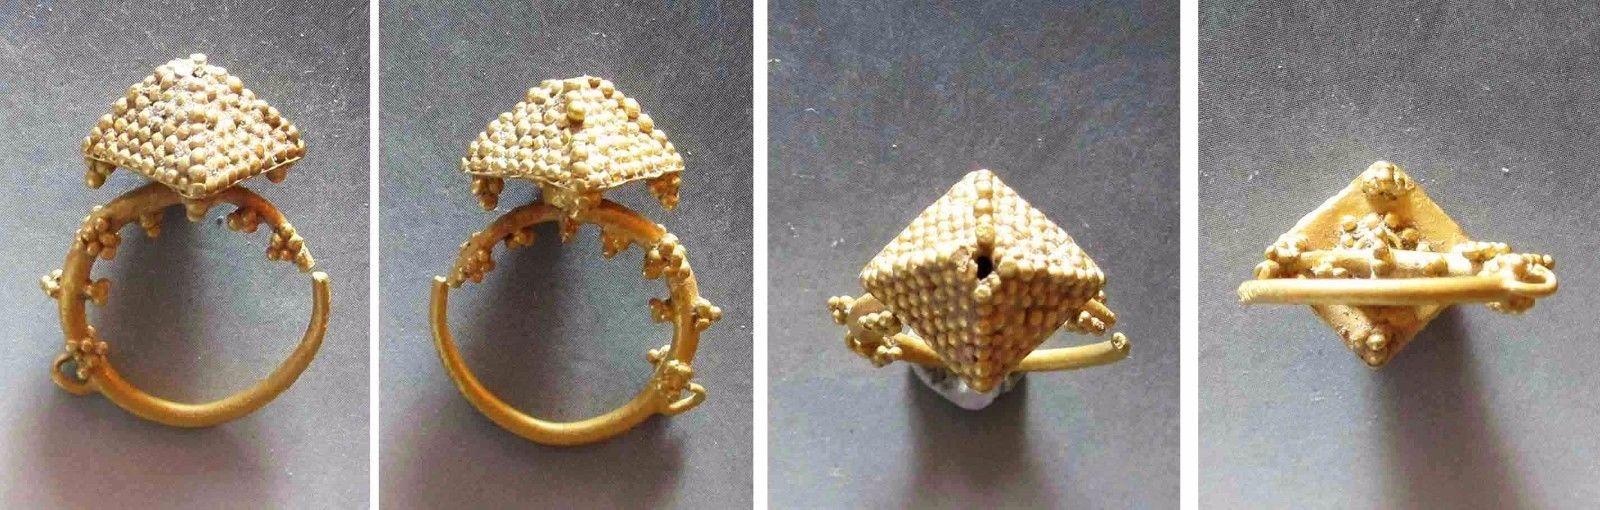 AA48. Authentic ancient gold nose-ring from Khwarizm.